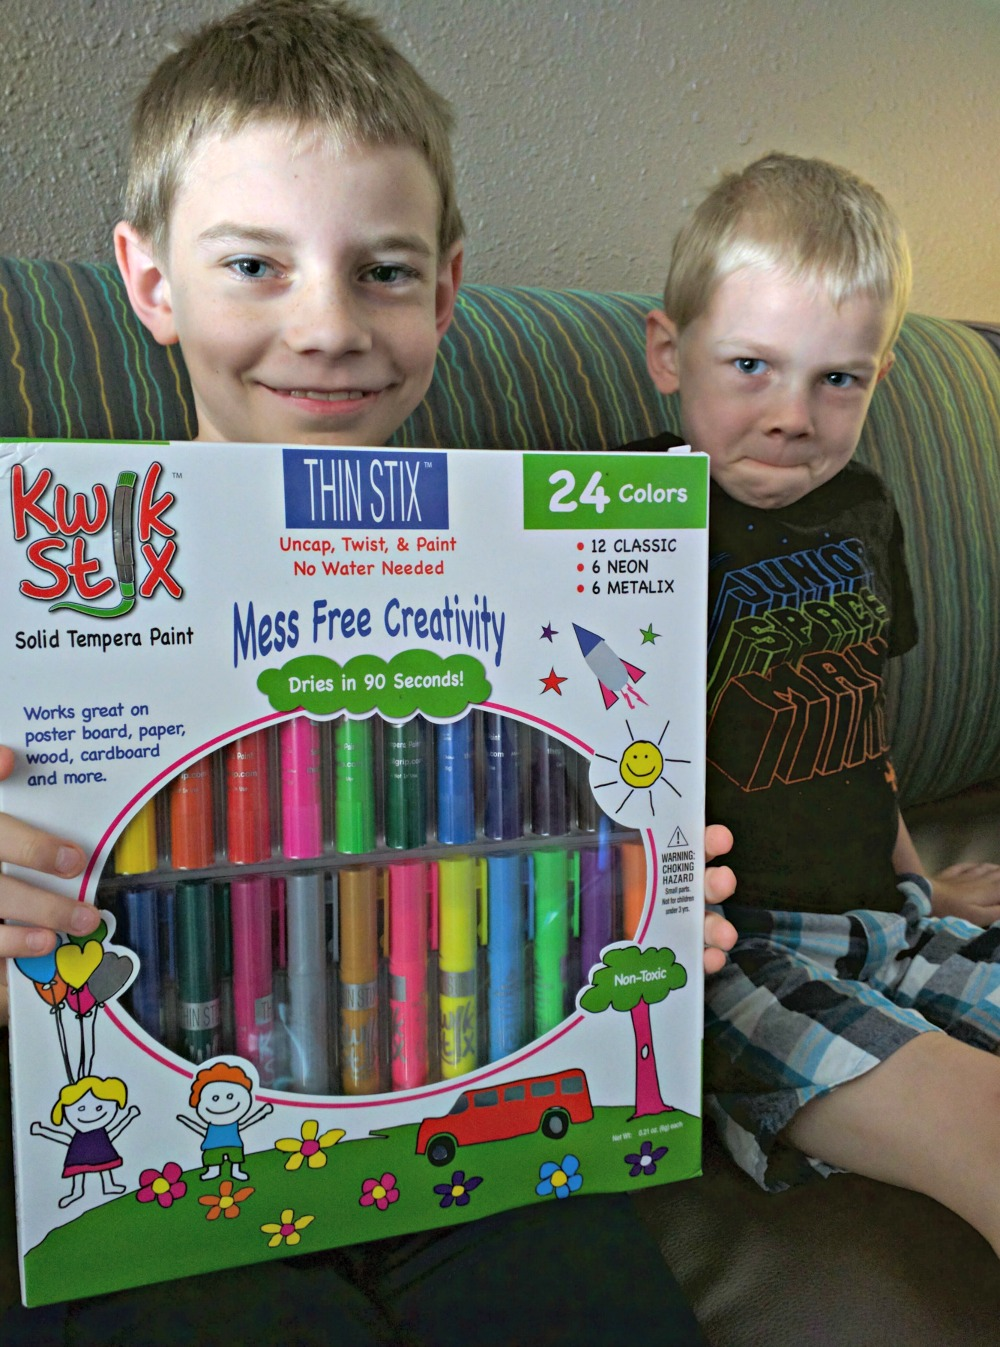 Thin Stix Creativity Pack of 24 colors - Solid Tempera Paint for Non-toxic painting fun